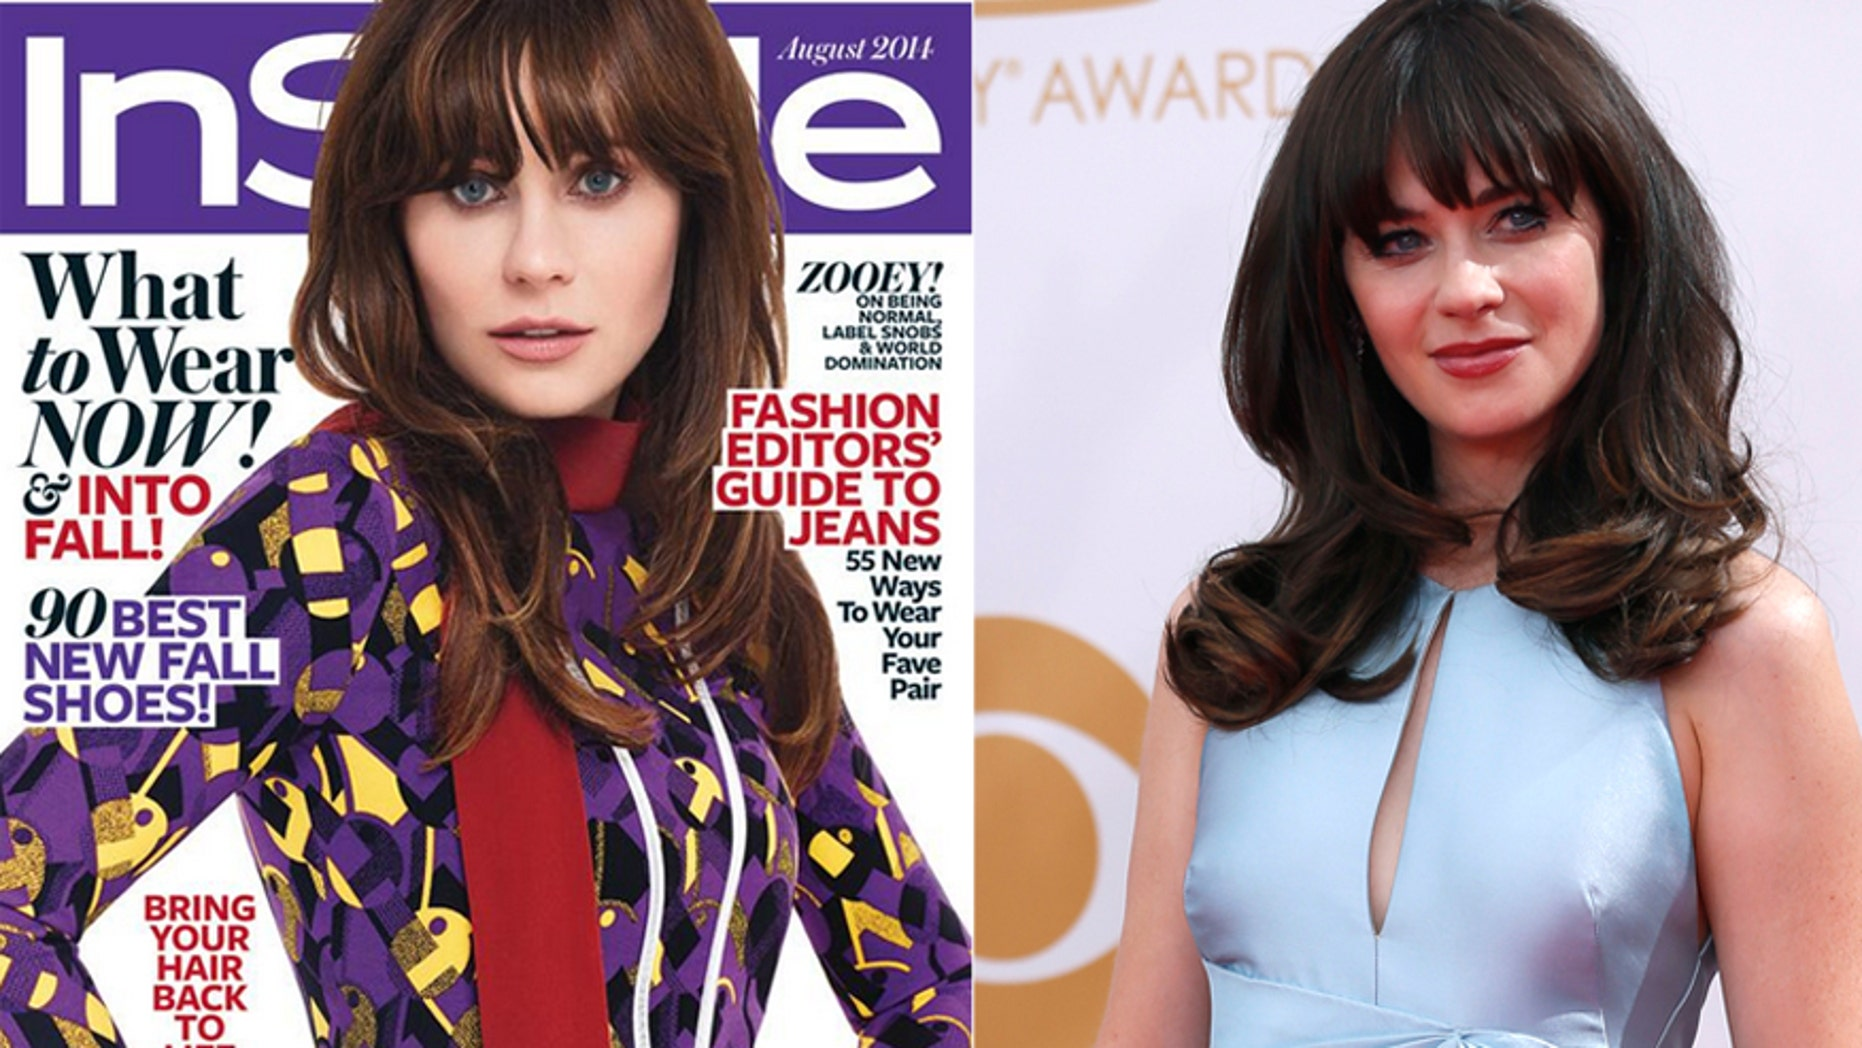 Zooey Deschanel appears on the cover of InStyle and at the 65th Primetime Emmy Awards.